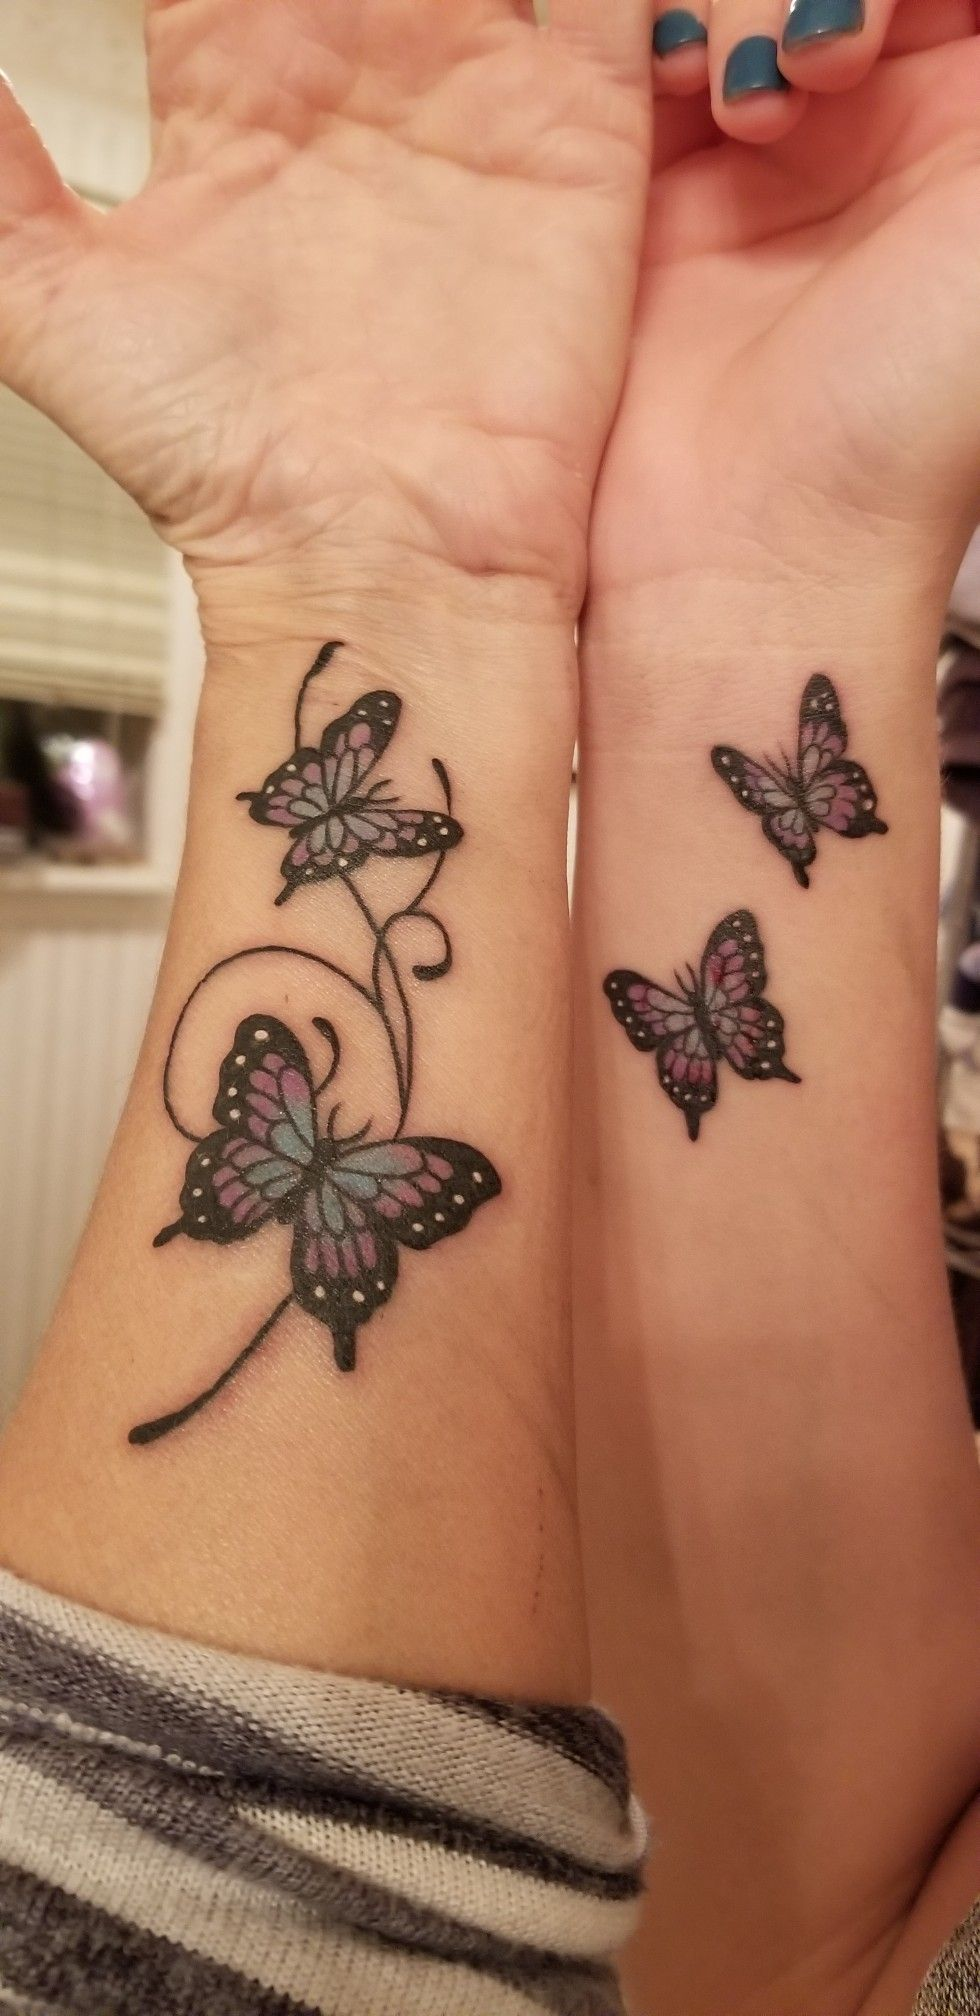 Mother Daughter Butterfly Tattoos Tattoos For Daughters Purple Tattoos Tattoos